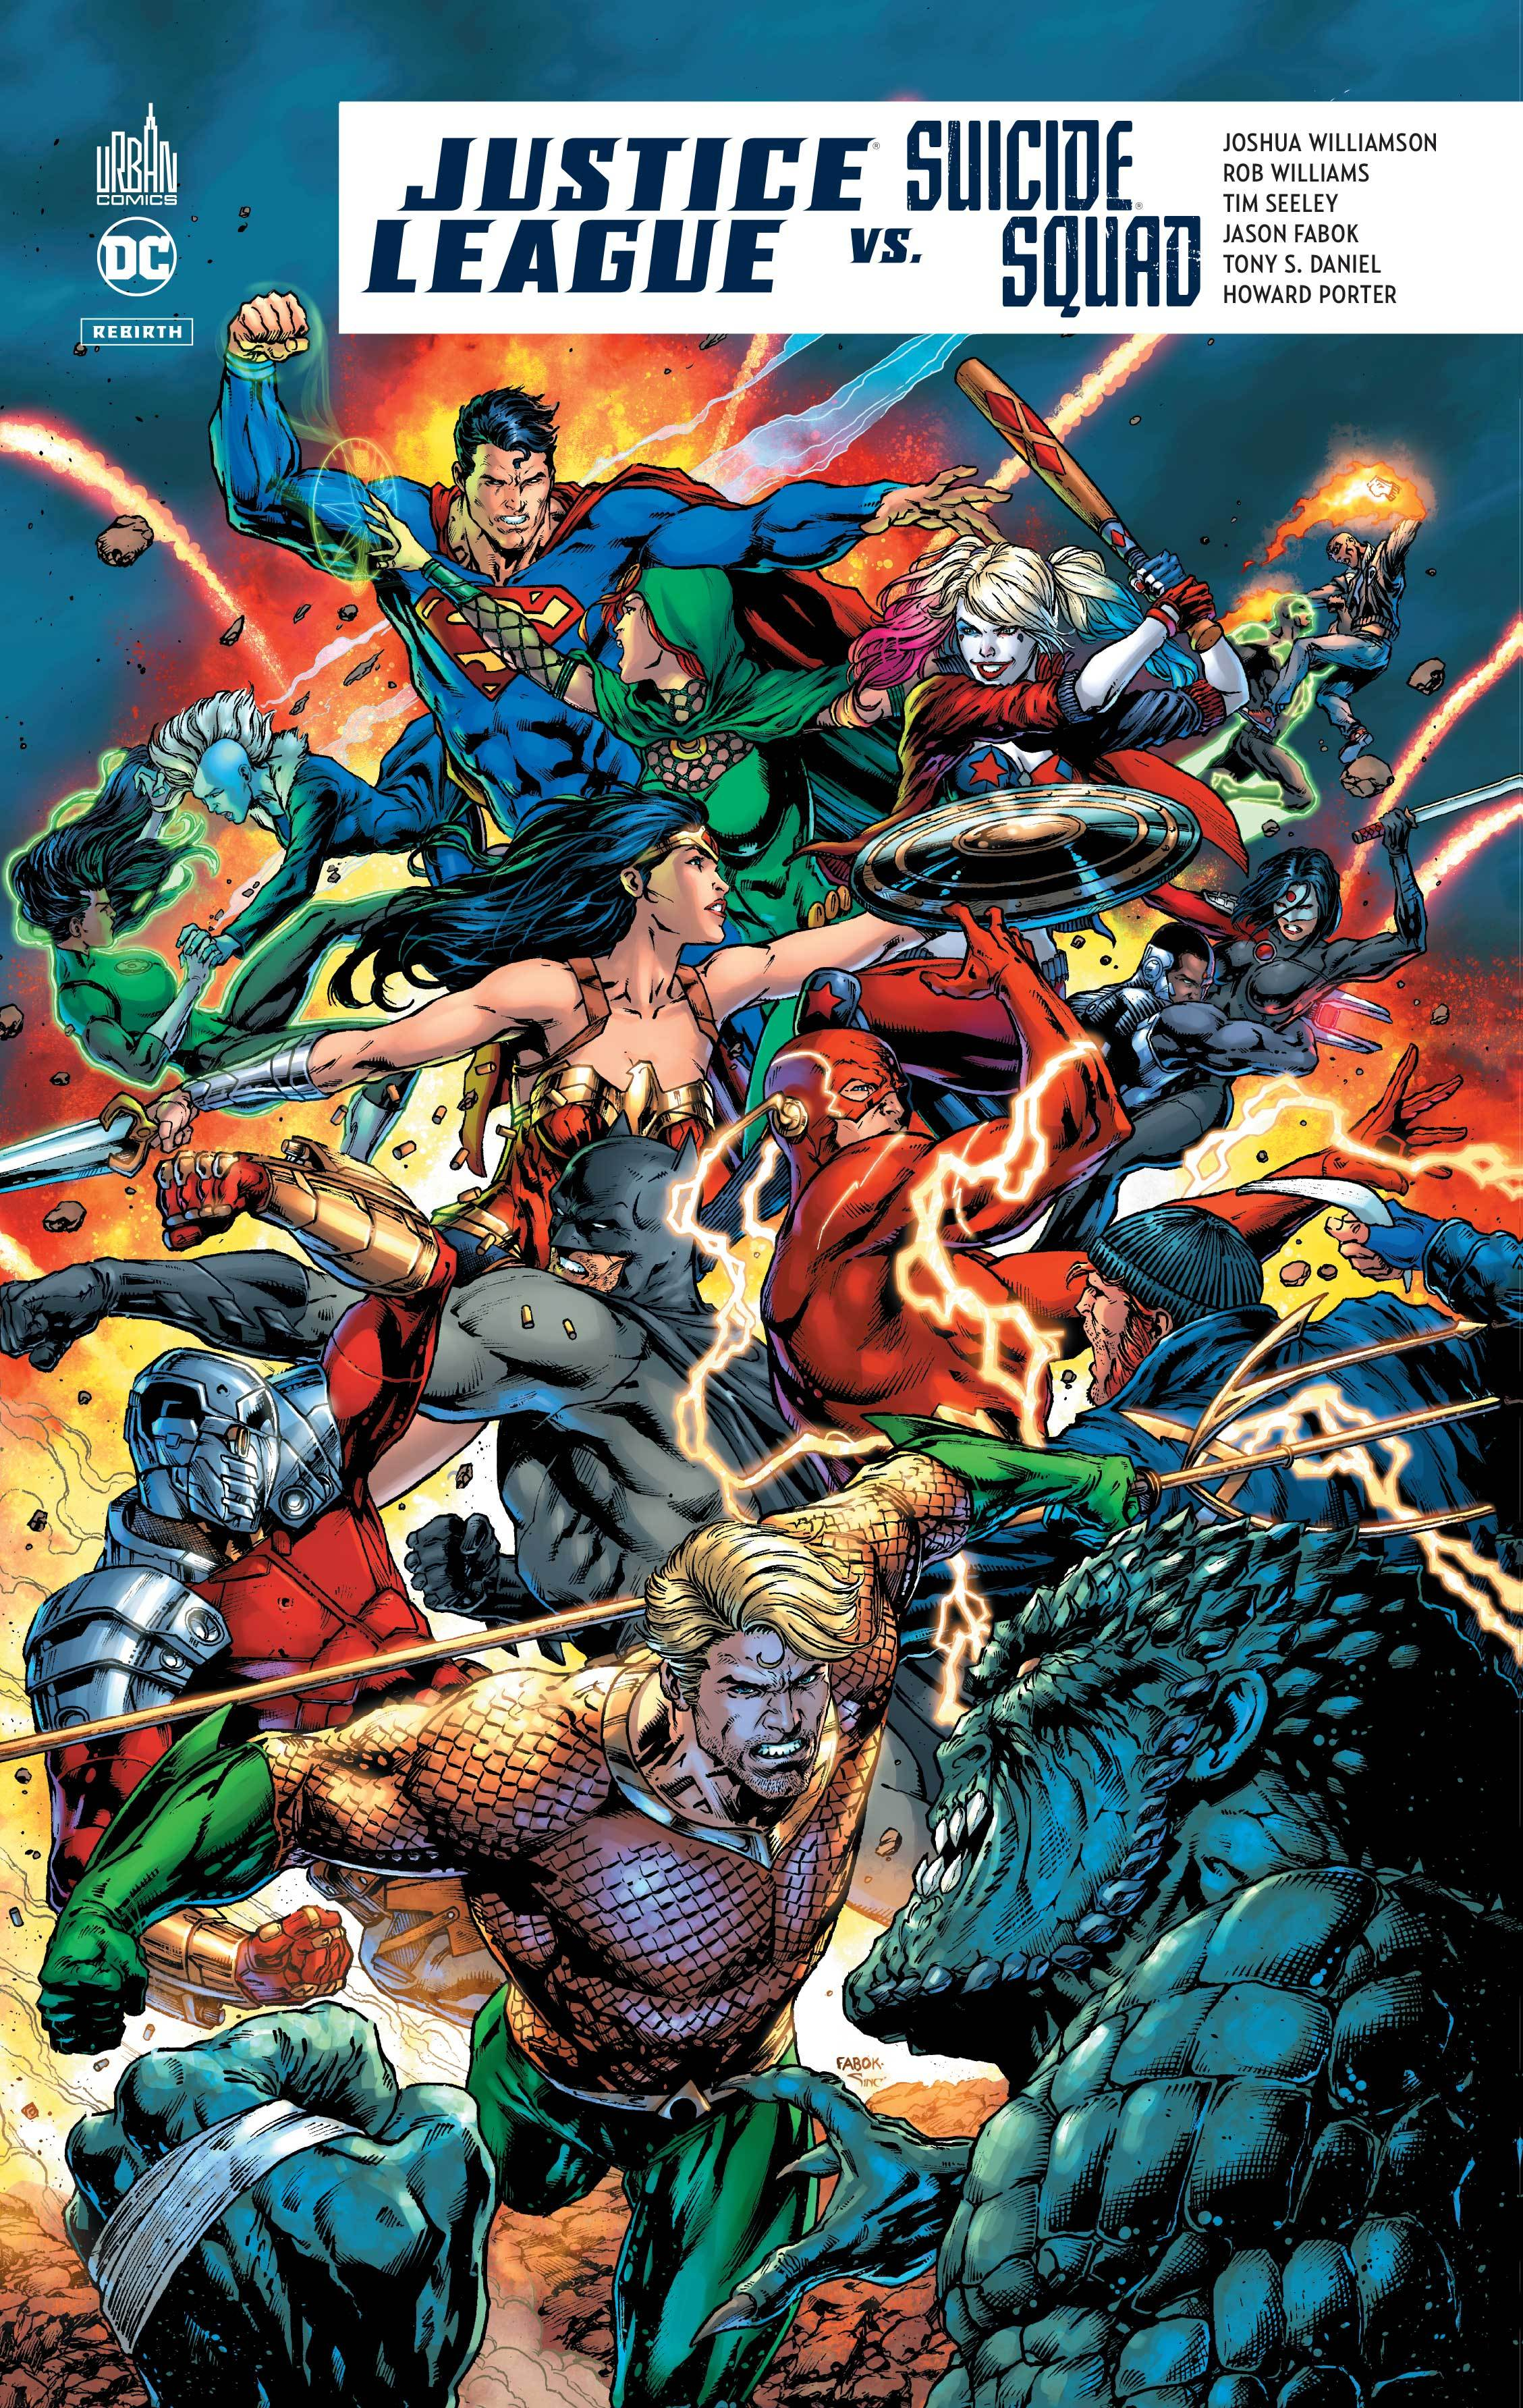 DC REBIRTH - JUSTICE LEAGUE VS SUICIDE SQUAD